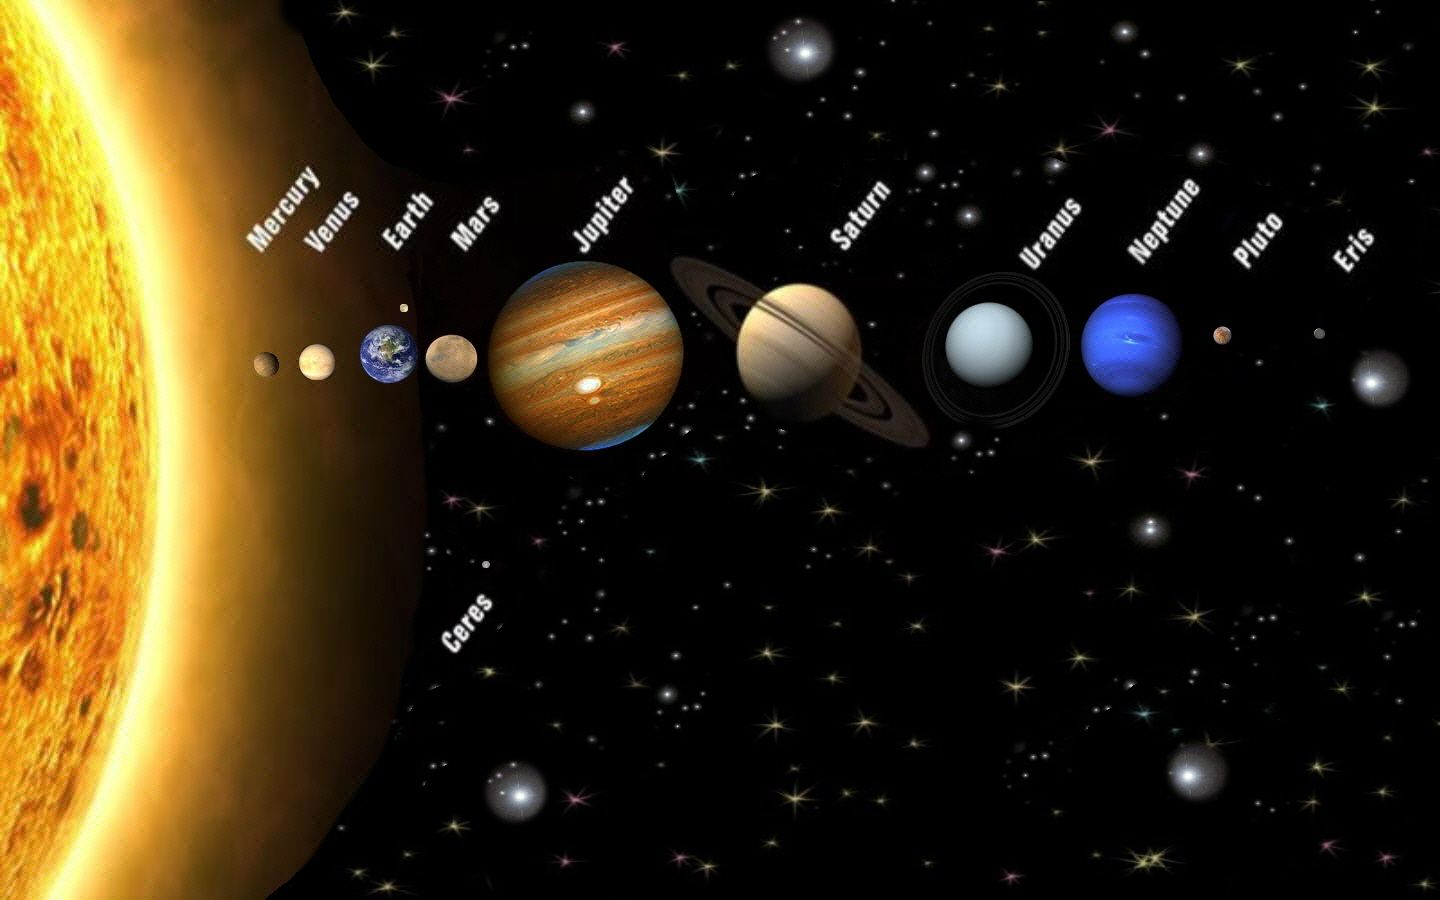 Dwarf Planets Planets Sun Planets Order And